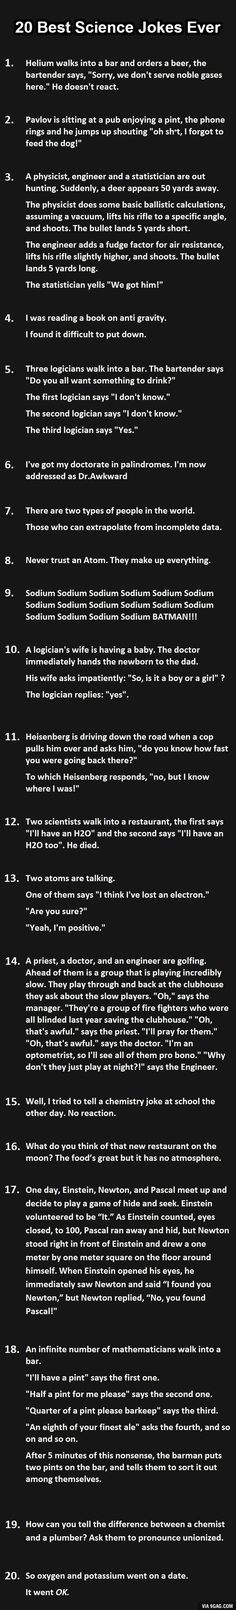 20 best science jokes ever… Do you get them all? Also, can people please explain 5,15 or 17 in the comments?? :s